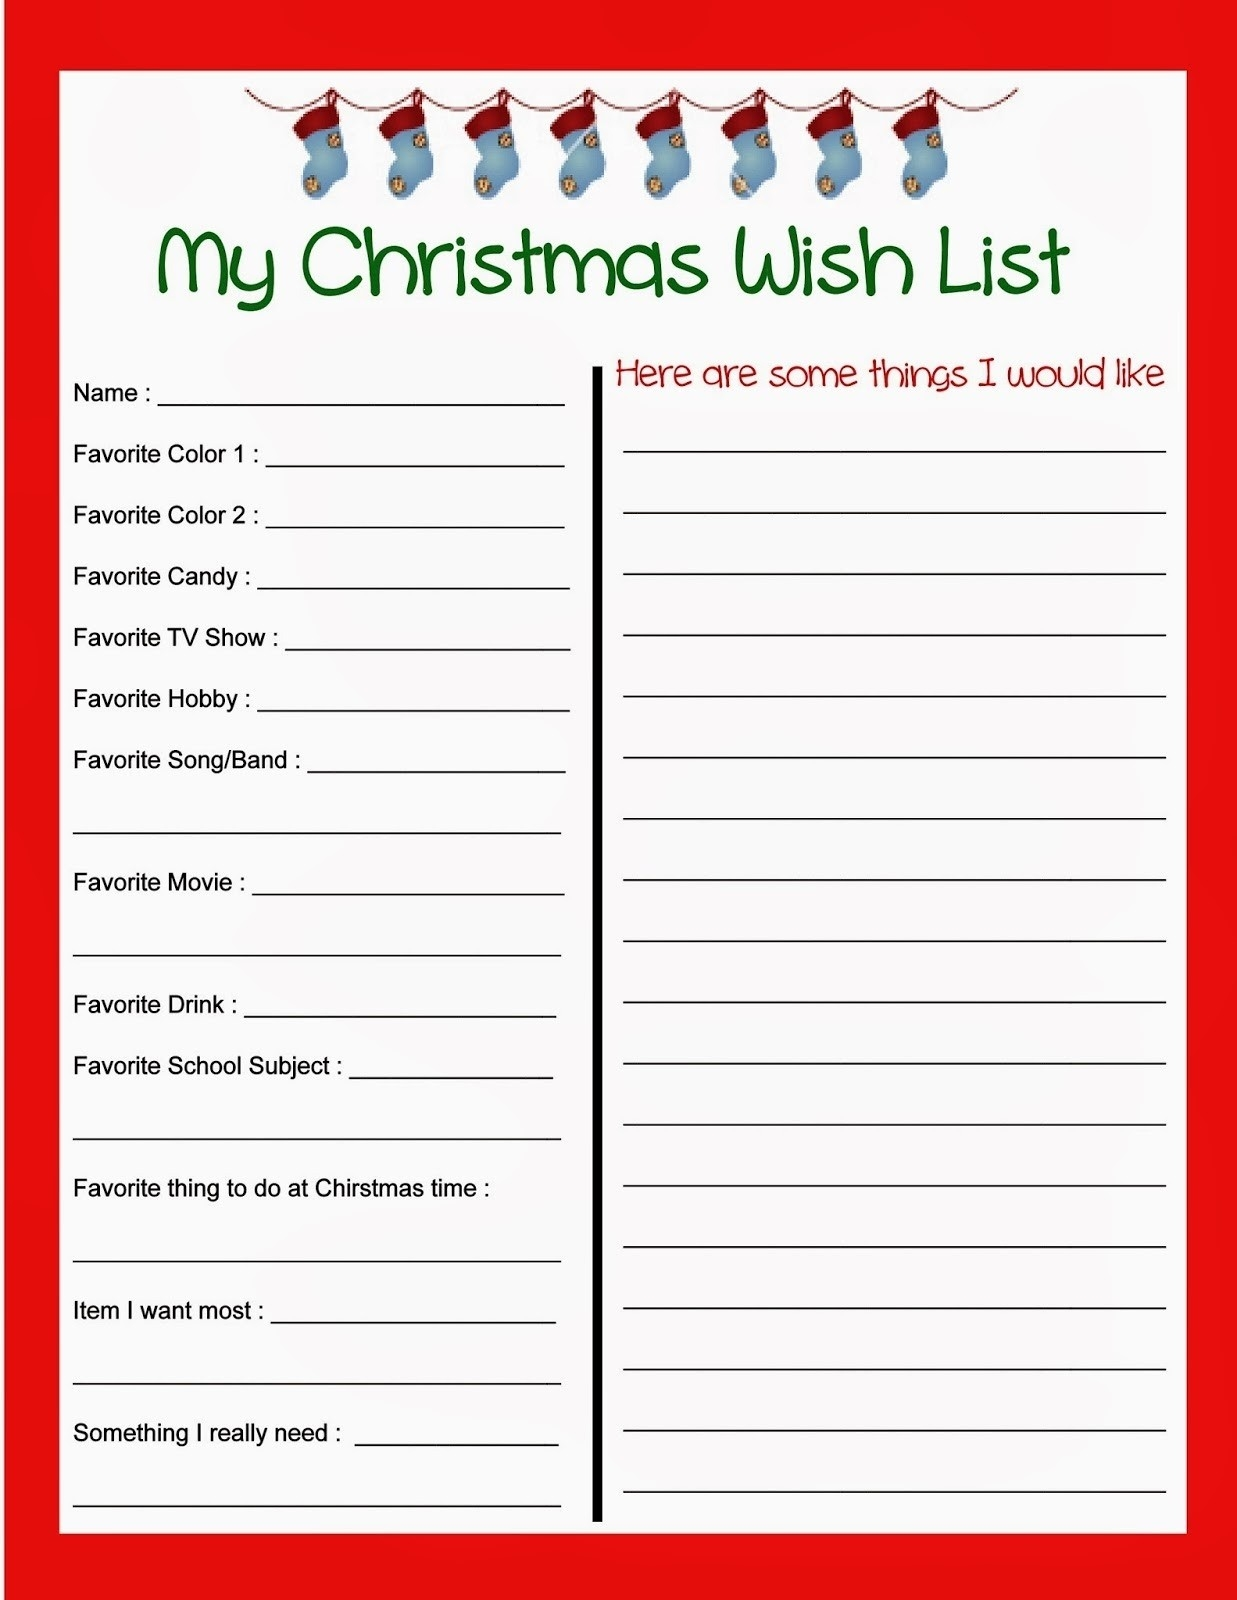 Printable Christmas Wish List Template | World Of Example for Printable Christmas Wish List Template 26192